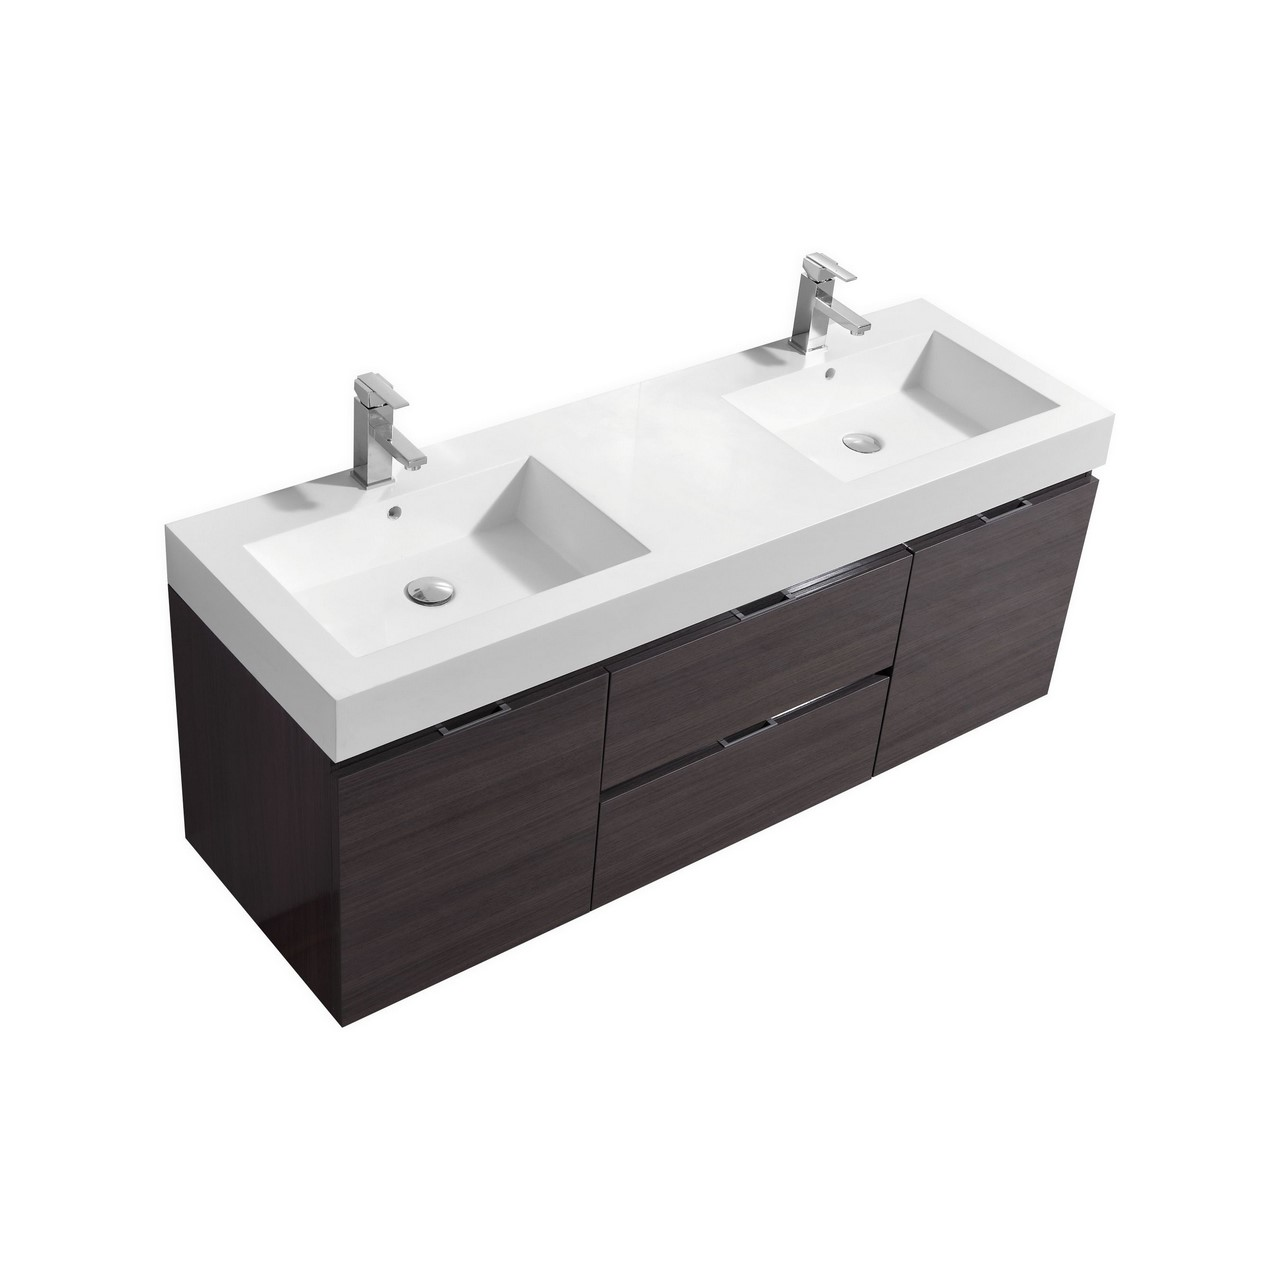 Bliss 60 high gloss gray oak wall mount double sink vanity - Modern bathroom vanity double sink ...